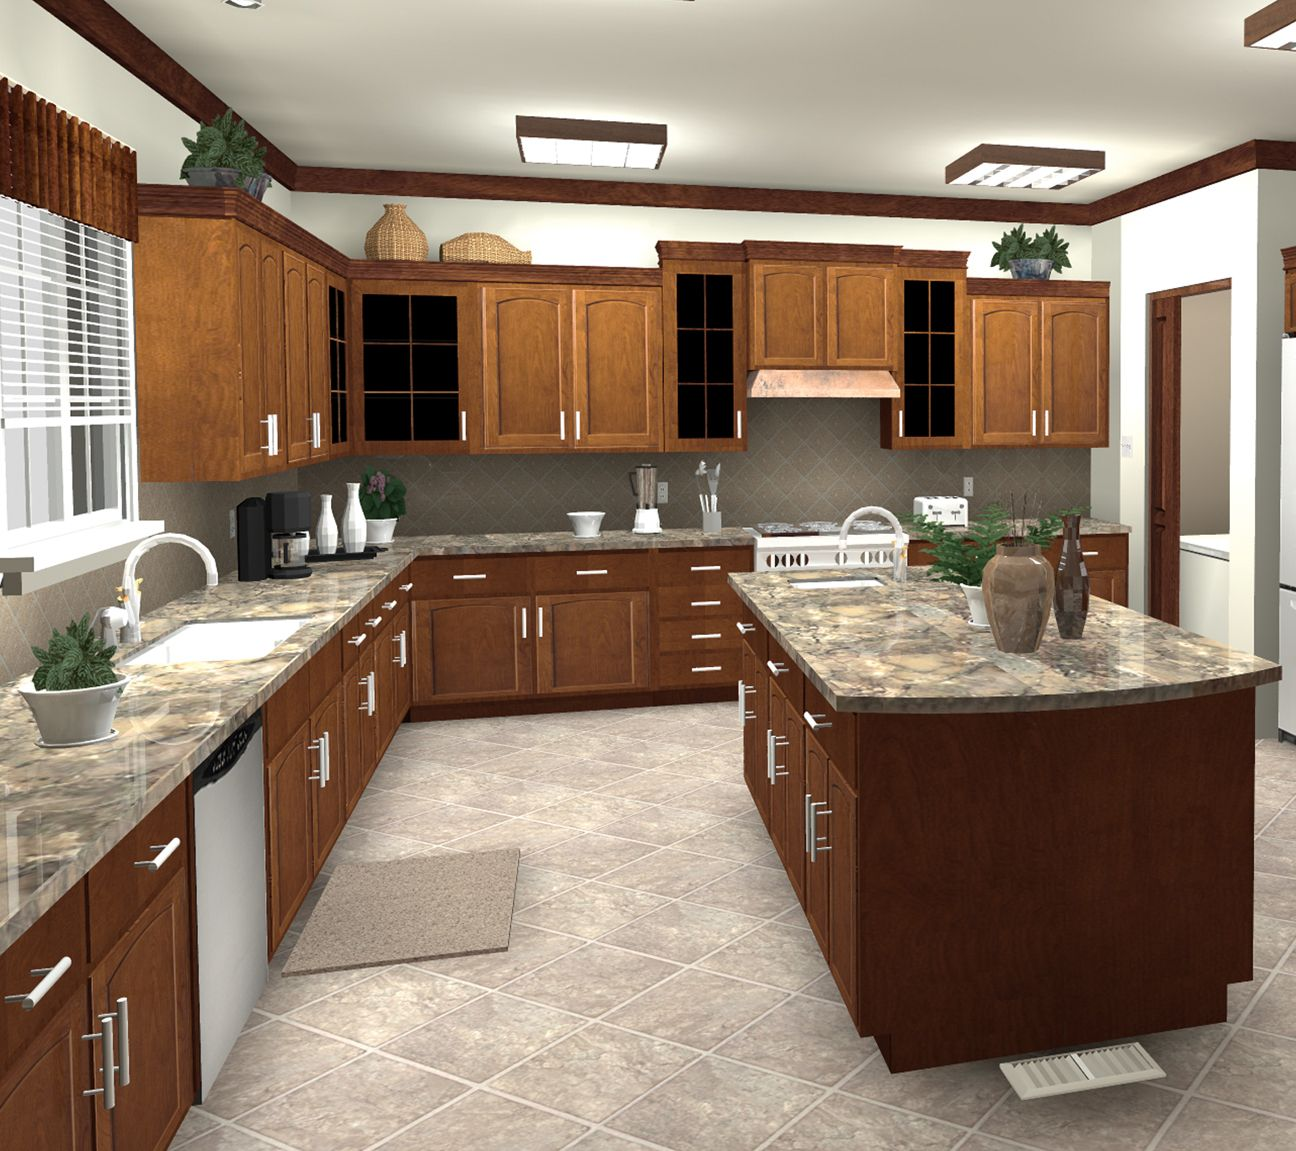 Turbofloorplan 3D Software  Software  Pinterest  Furniture Magnificent Kitchen Cupboard Design Software Decorating Design